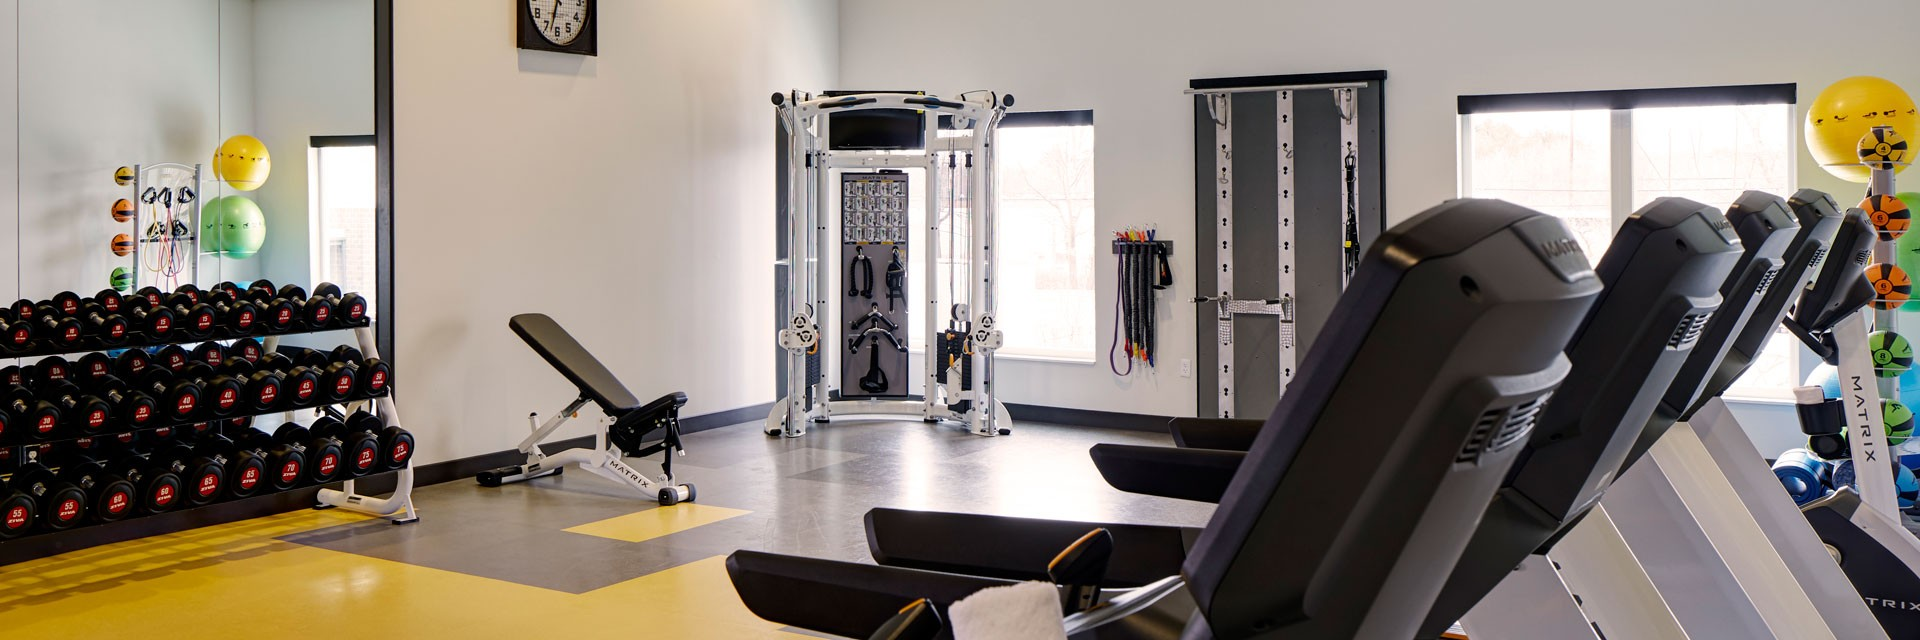 Archer Hotel Burlington Fitness Studio